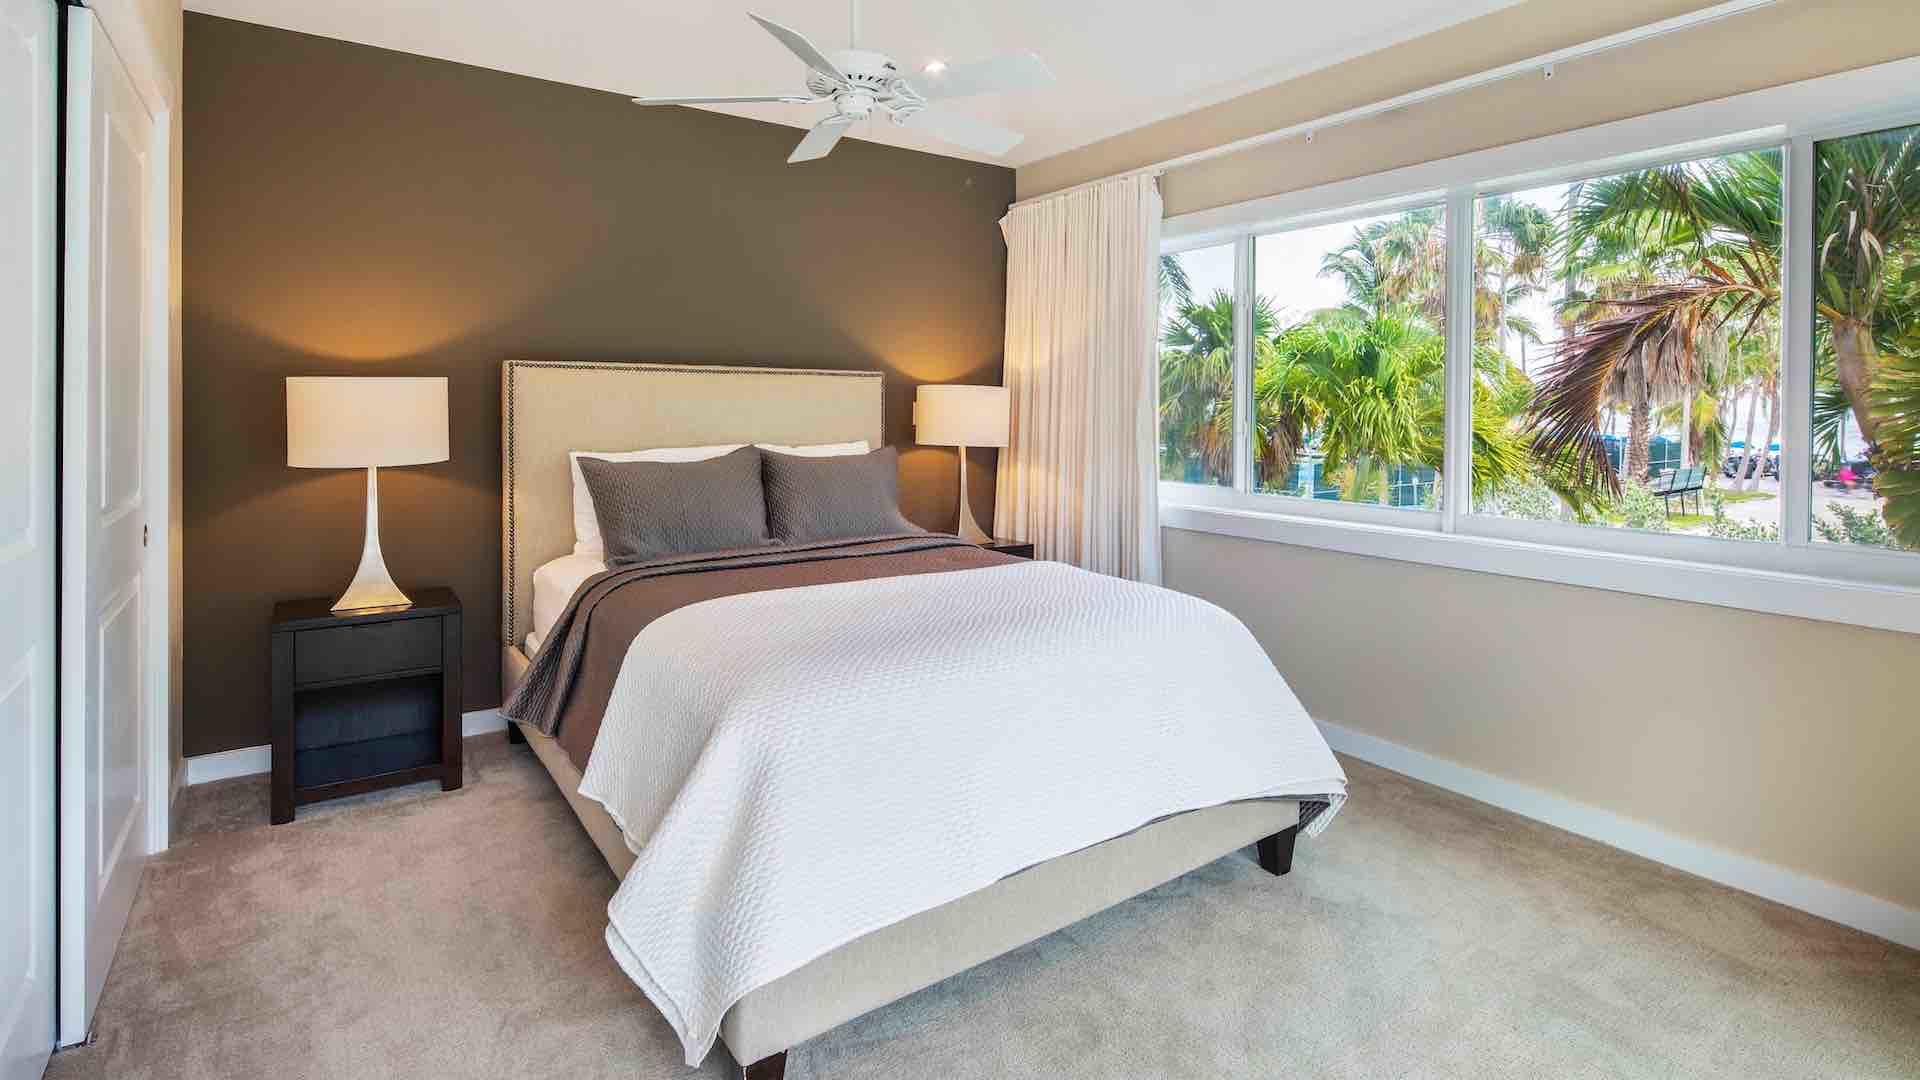 The second master bedroom suite is very private, with King bed and overhead fan…